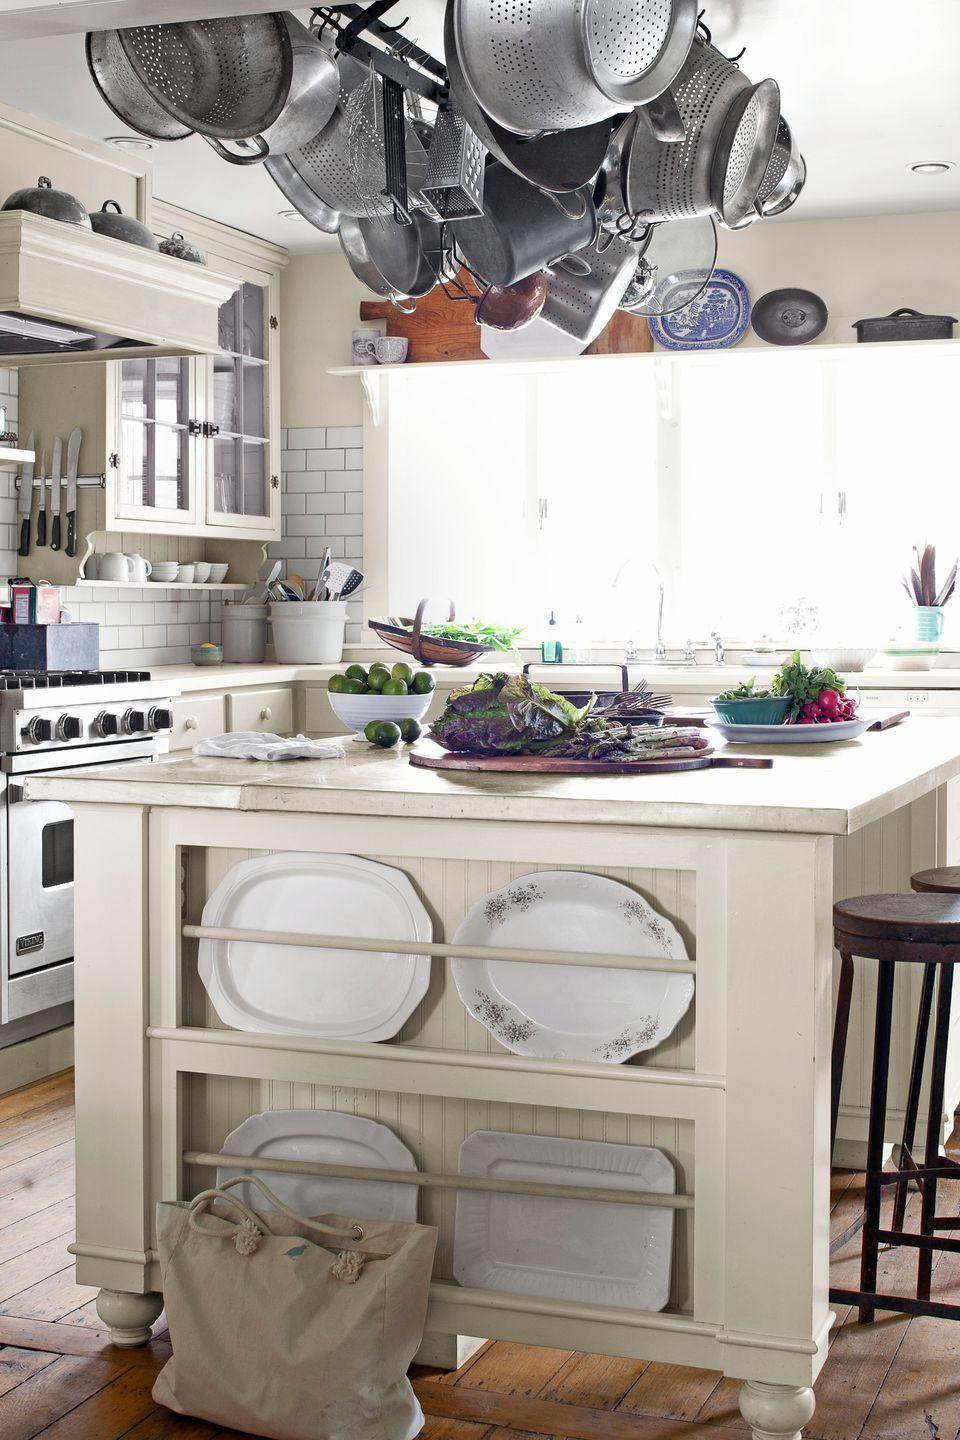 """<p>The kitchen island in this <a href=""""https://www.countryliving.com/home-design/house-tours/g1263/farmhouse-decorating-ideas/"""" rel=""""nofollow noopener"""" target=""""_blank"""" data-ylk=""""slk:Ohio farmhouse"""" class=""""link rapid-noclick-resp"""">Ohio farmhouse</a> boasts a custom zinc top crafted by a local metal shop and built-in racks for displaying prized serving pieces. Classic white subway tile forms the backsplash. </p>"""